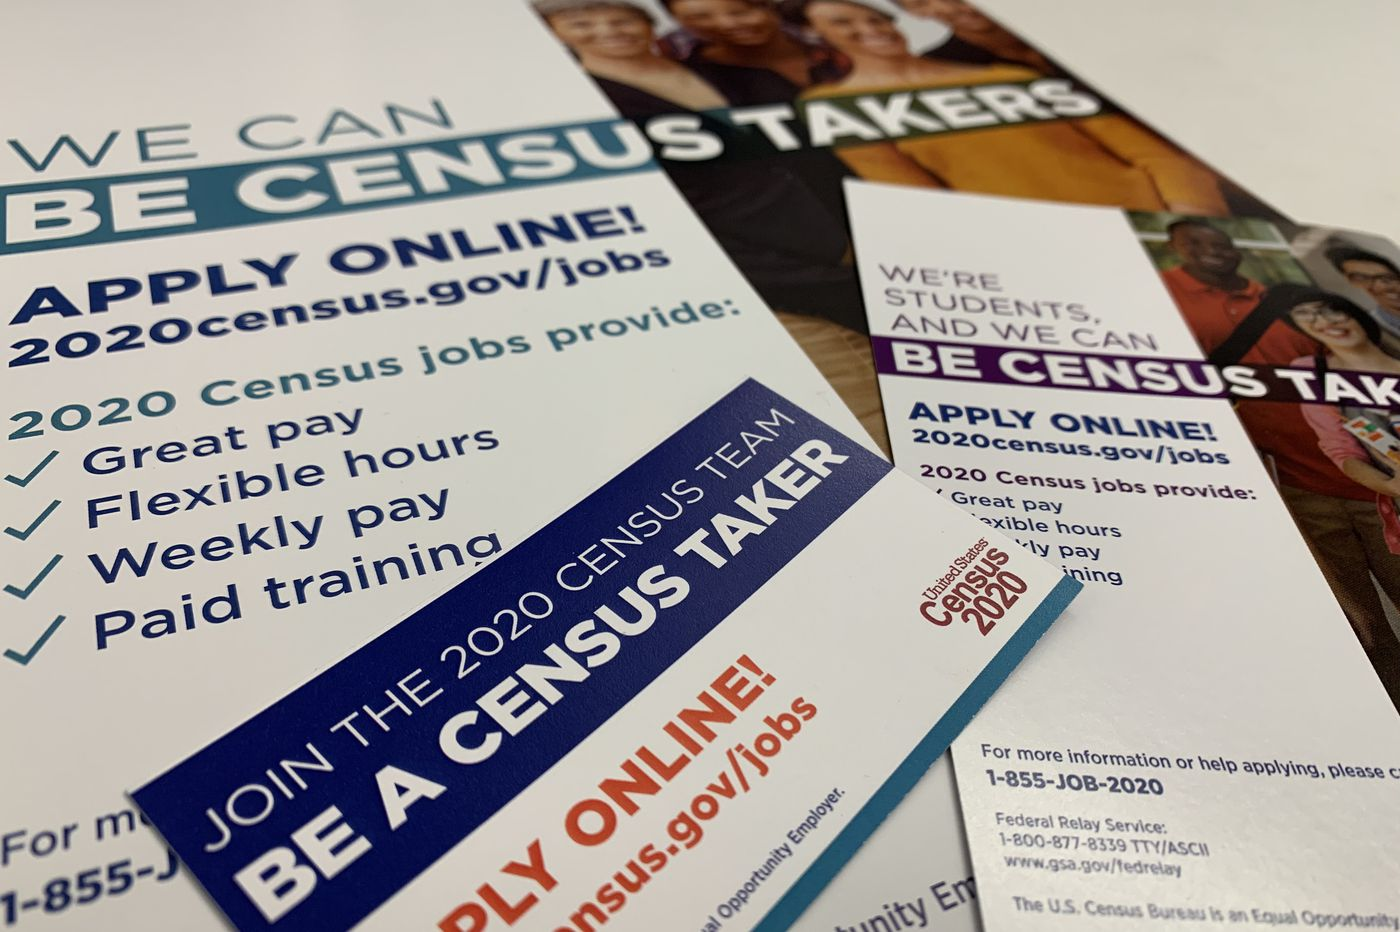 The Census Bureau is ramping up recruiting for 2020 jobs